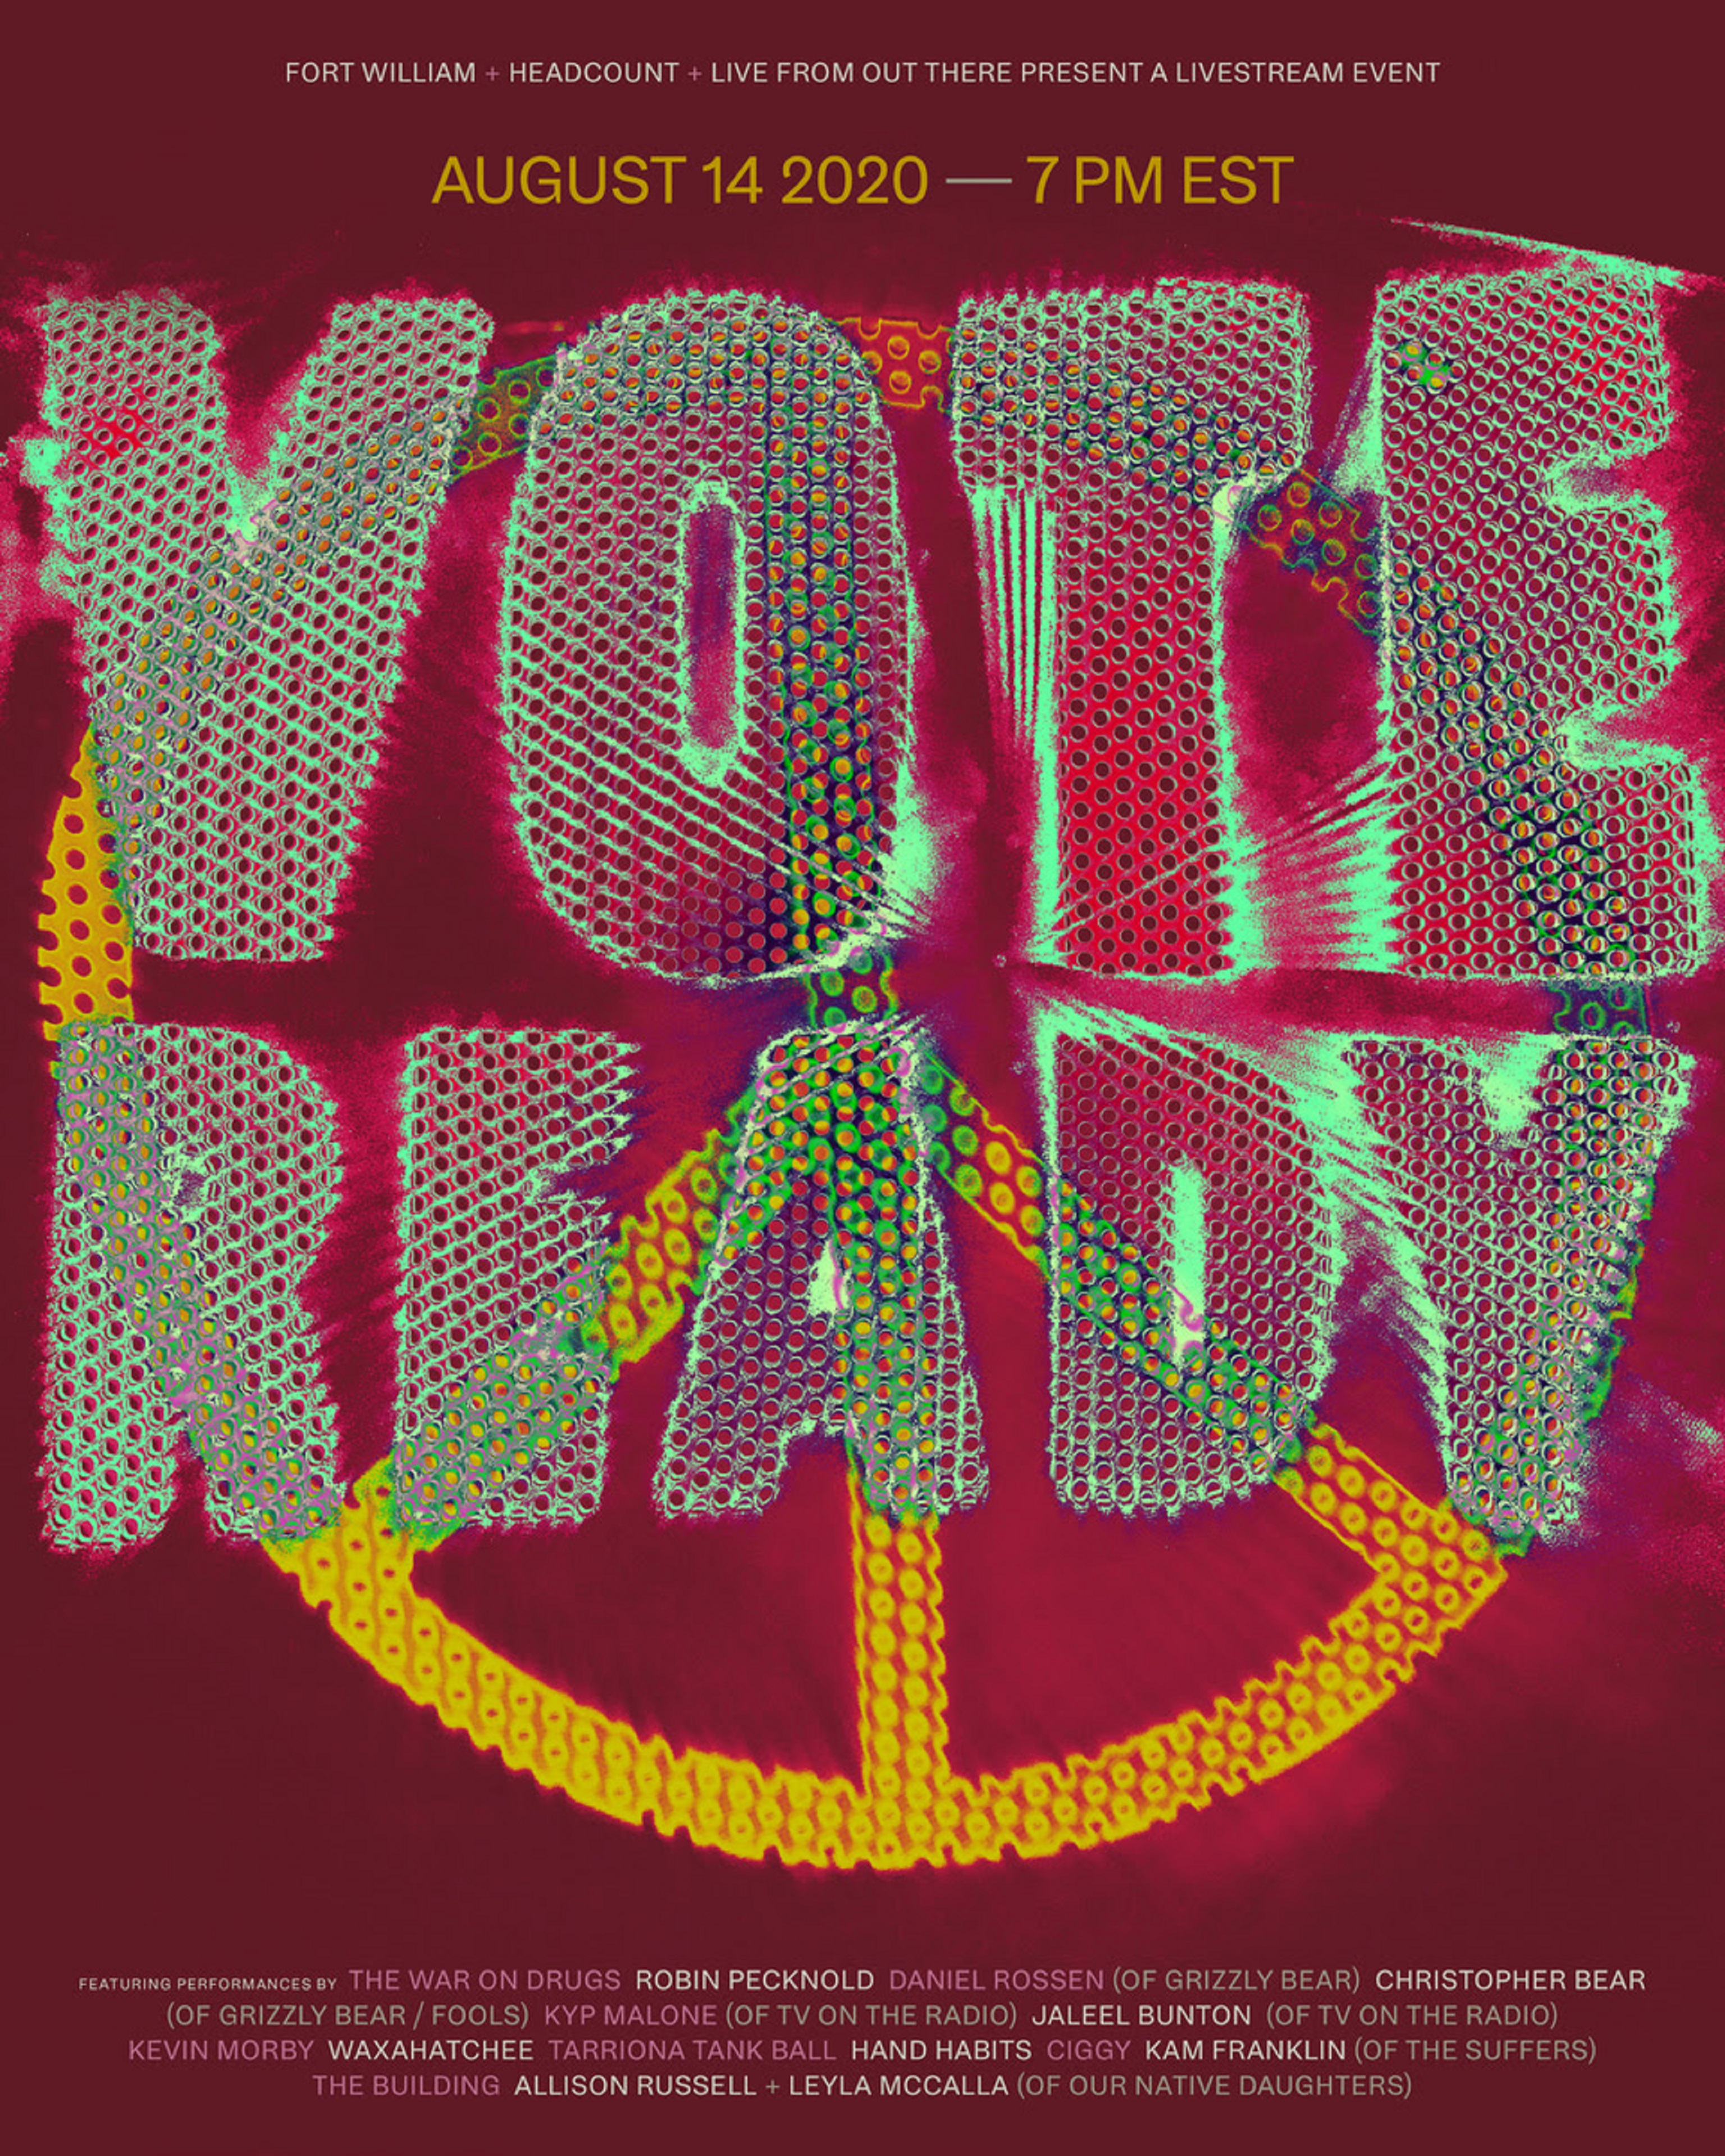 VOTE READY Concert for Voter Registration on Aug 14